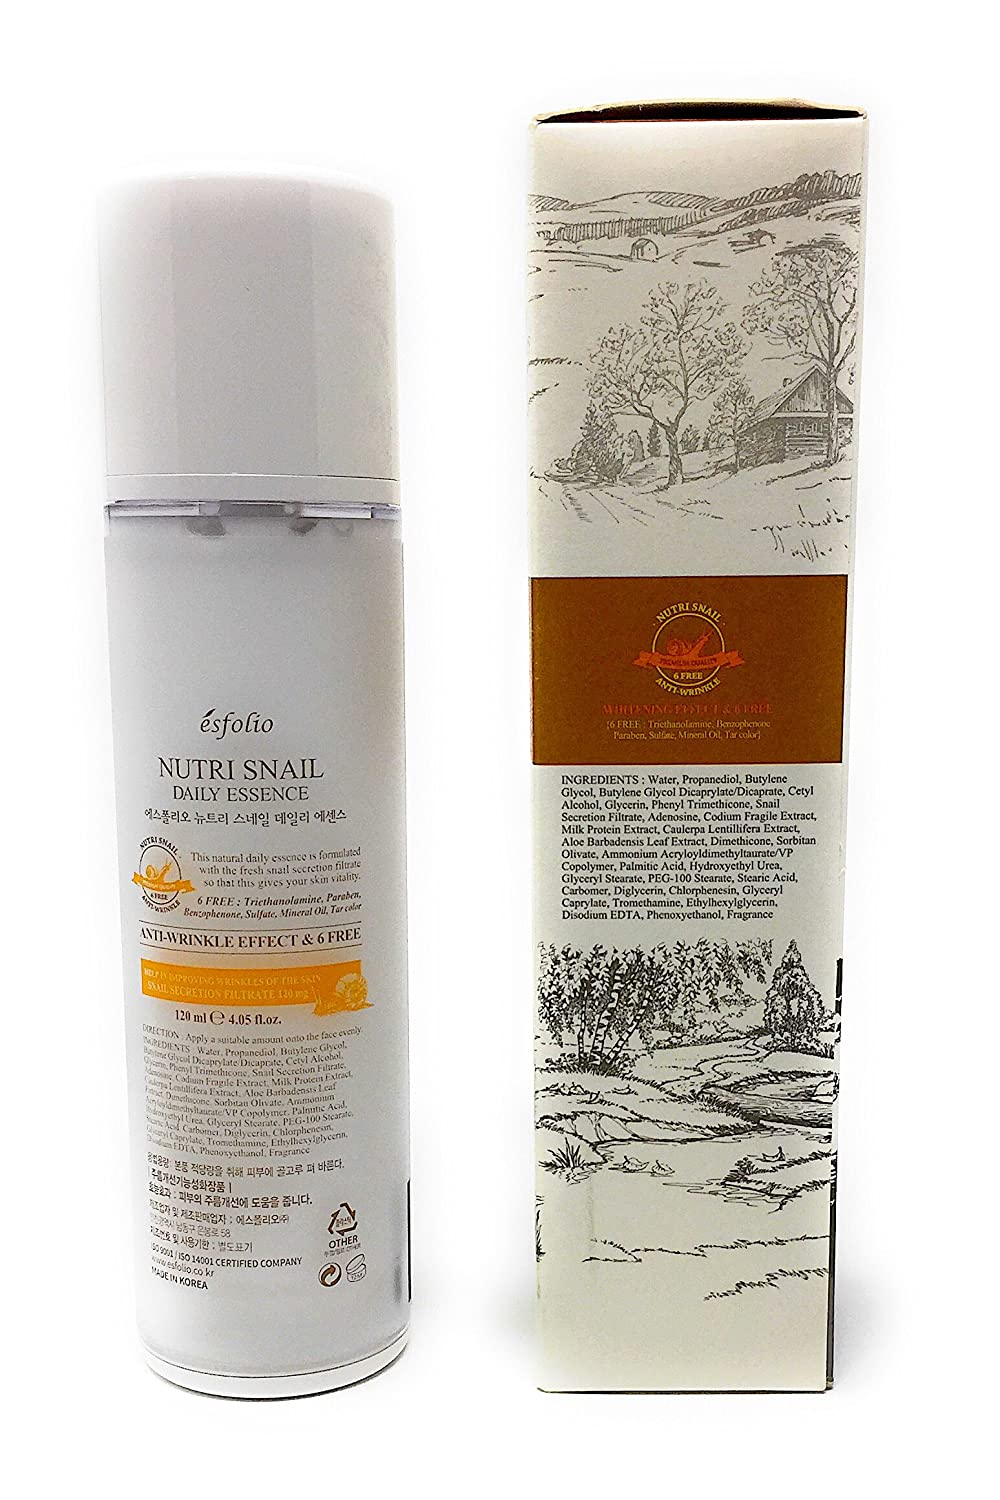 Amazon.com: Nutri Snail Anti-Wrinkle Daily Essence by Esfolio (4.5 fl oz): Beauty